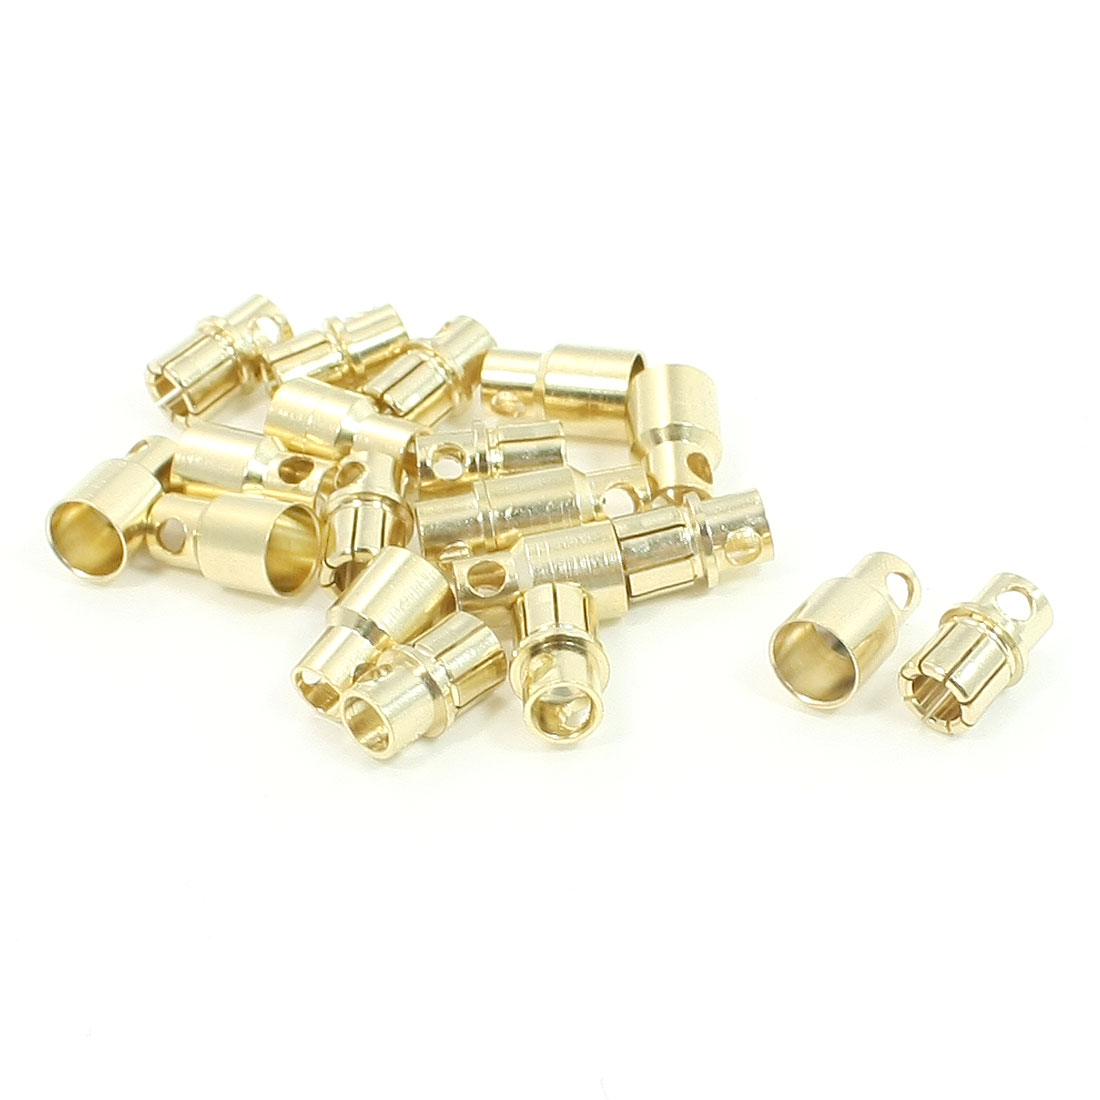 RC Helicopter Airplane Motor ESC Battery 8mm Banana Plug Female Male 10 Pair